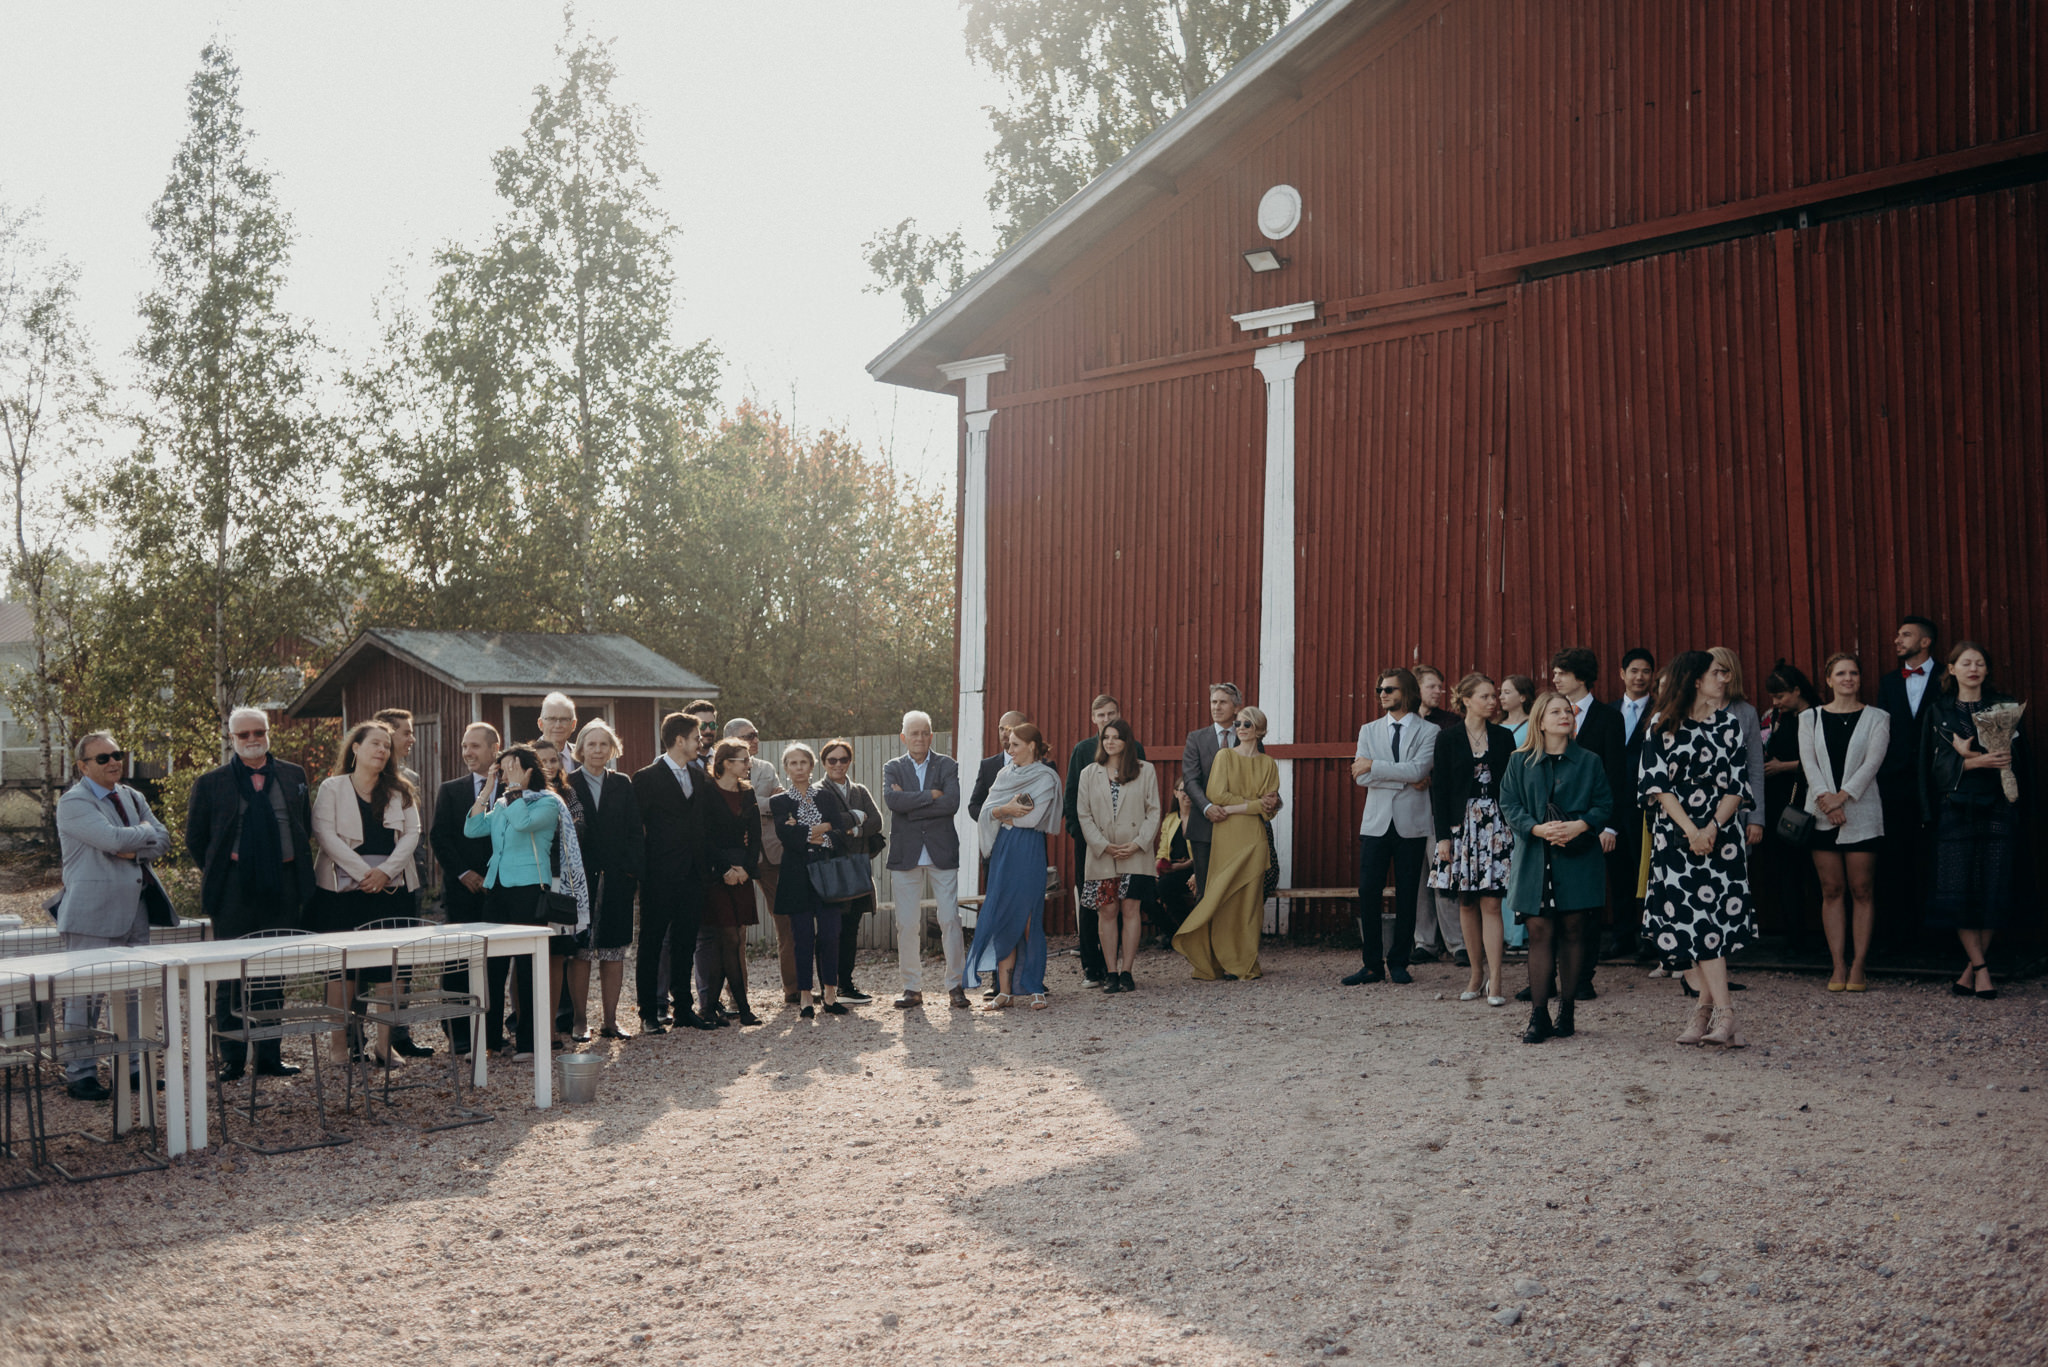 Guests watching during wedding ceremony at Valkosaaren Telakka